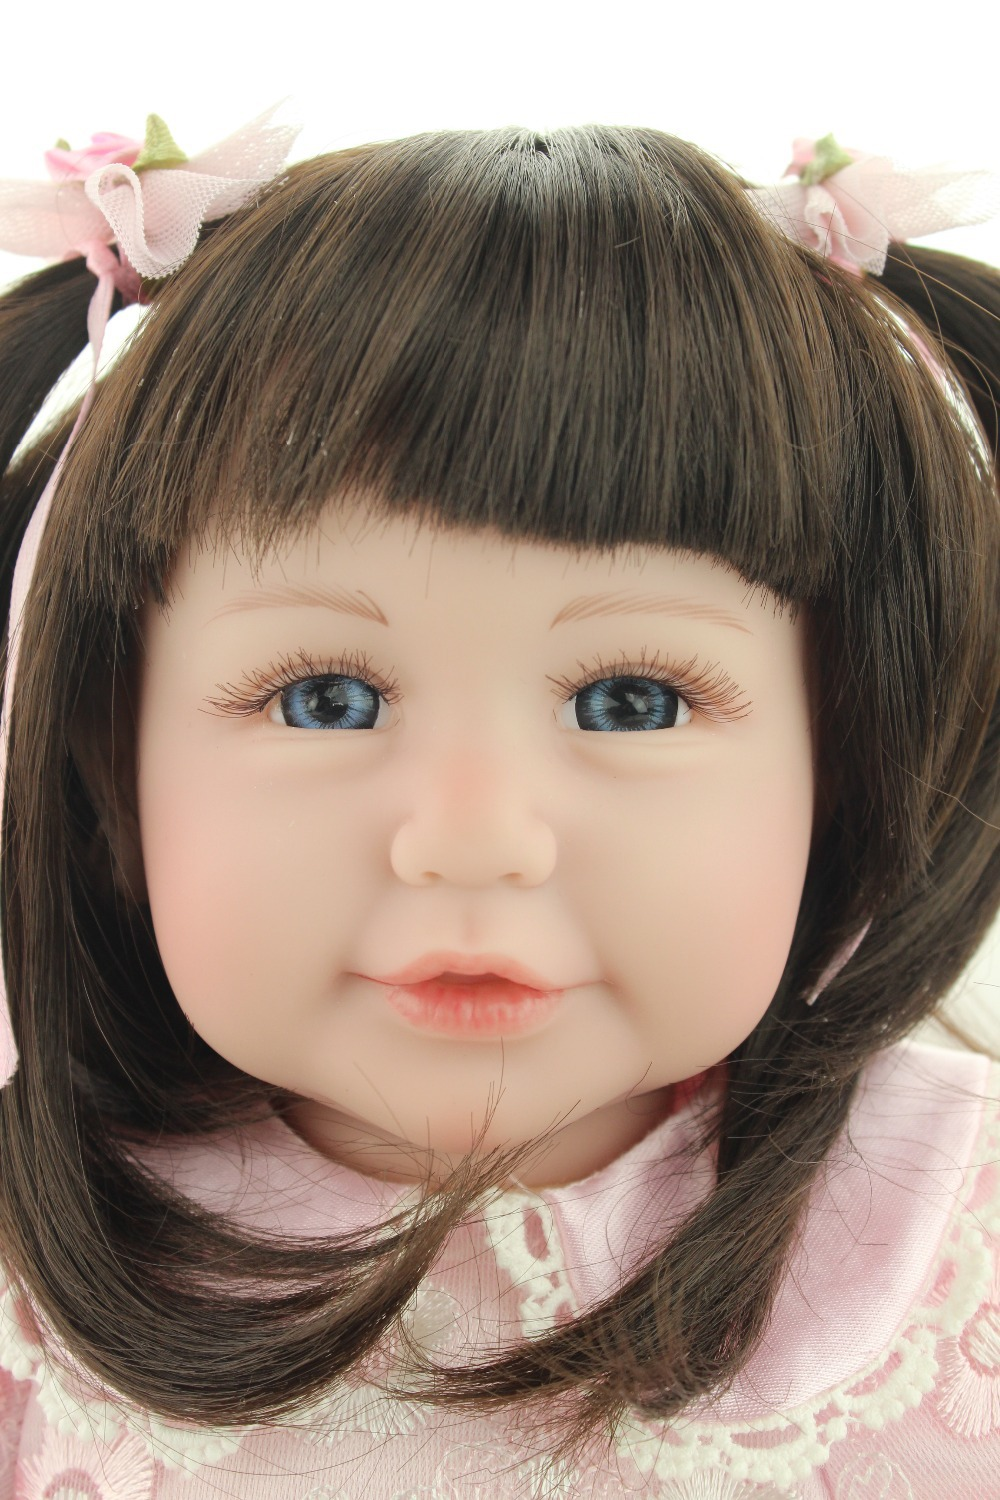 NPK 20 soft Silicone Vinyl Reborn Baby Girl Realistic Alive Newborn Babies Doll Ethnic bebe Toddler For kids Xmas Gifts